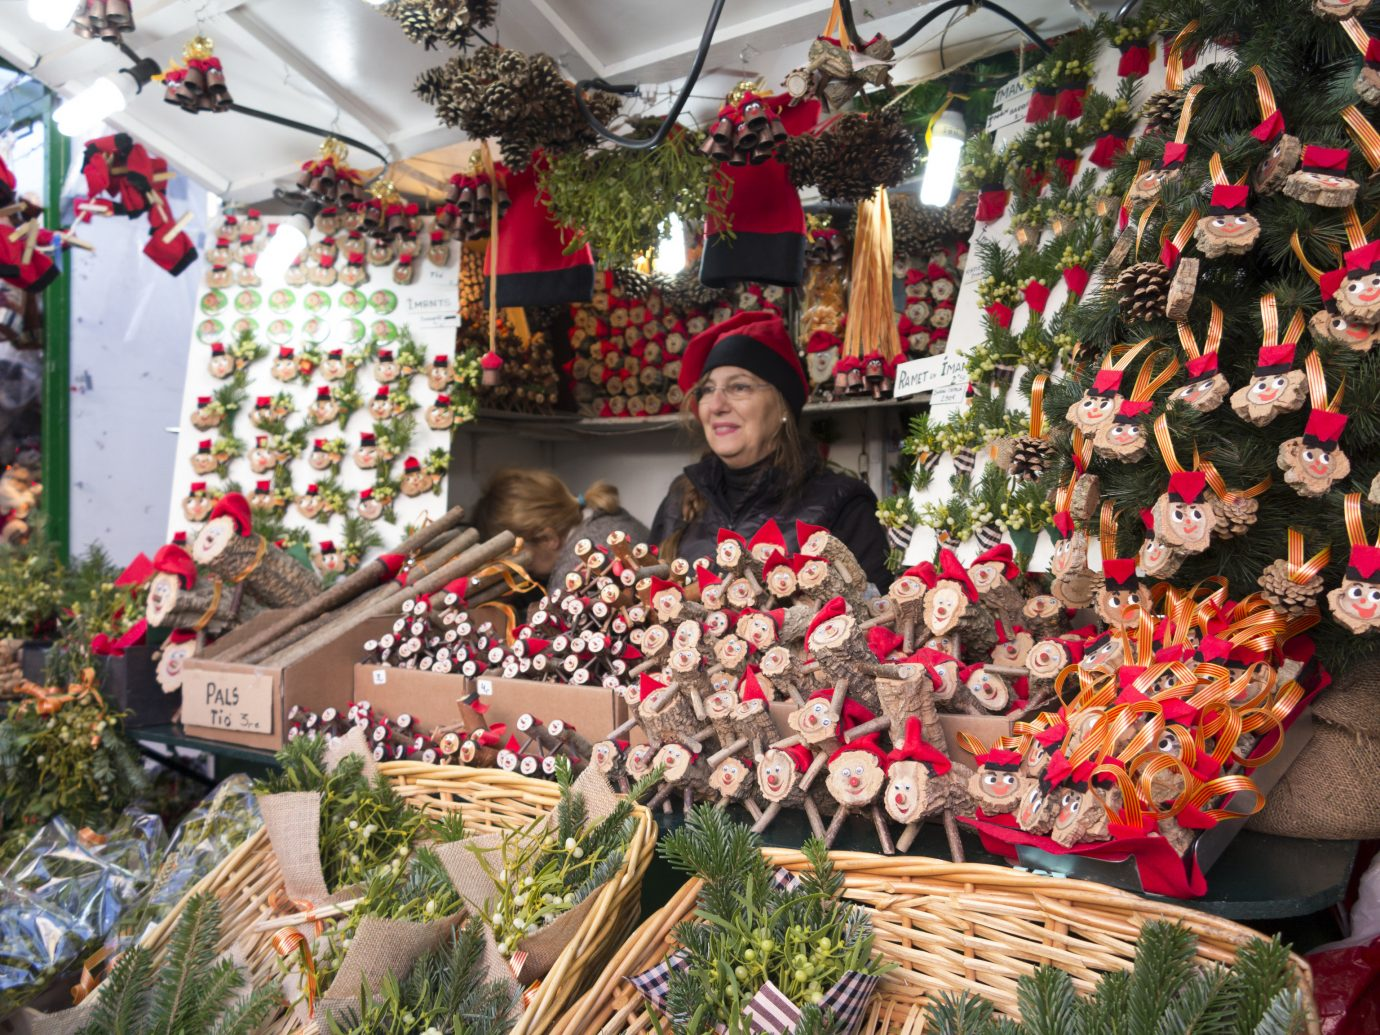 Trip Ideas marketplace public space City Christmas market christmas decoration floristry vendor bazaar Christmas tree flower holiday festival Shop